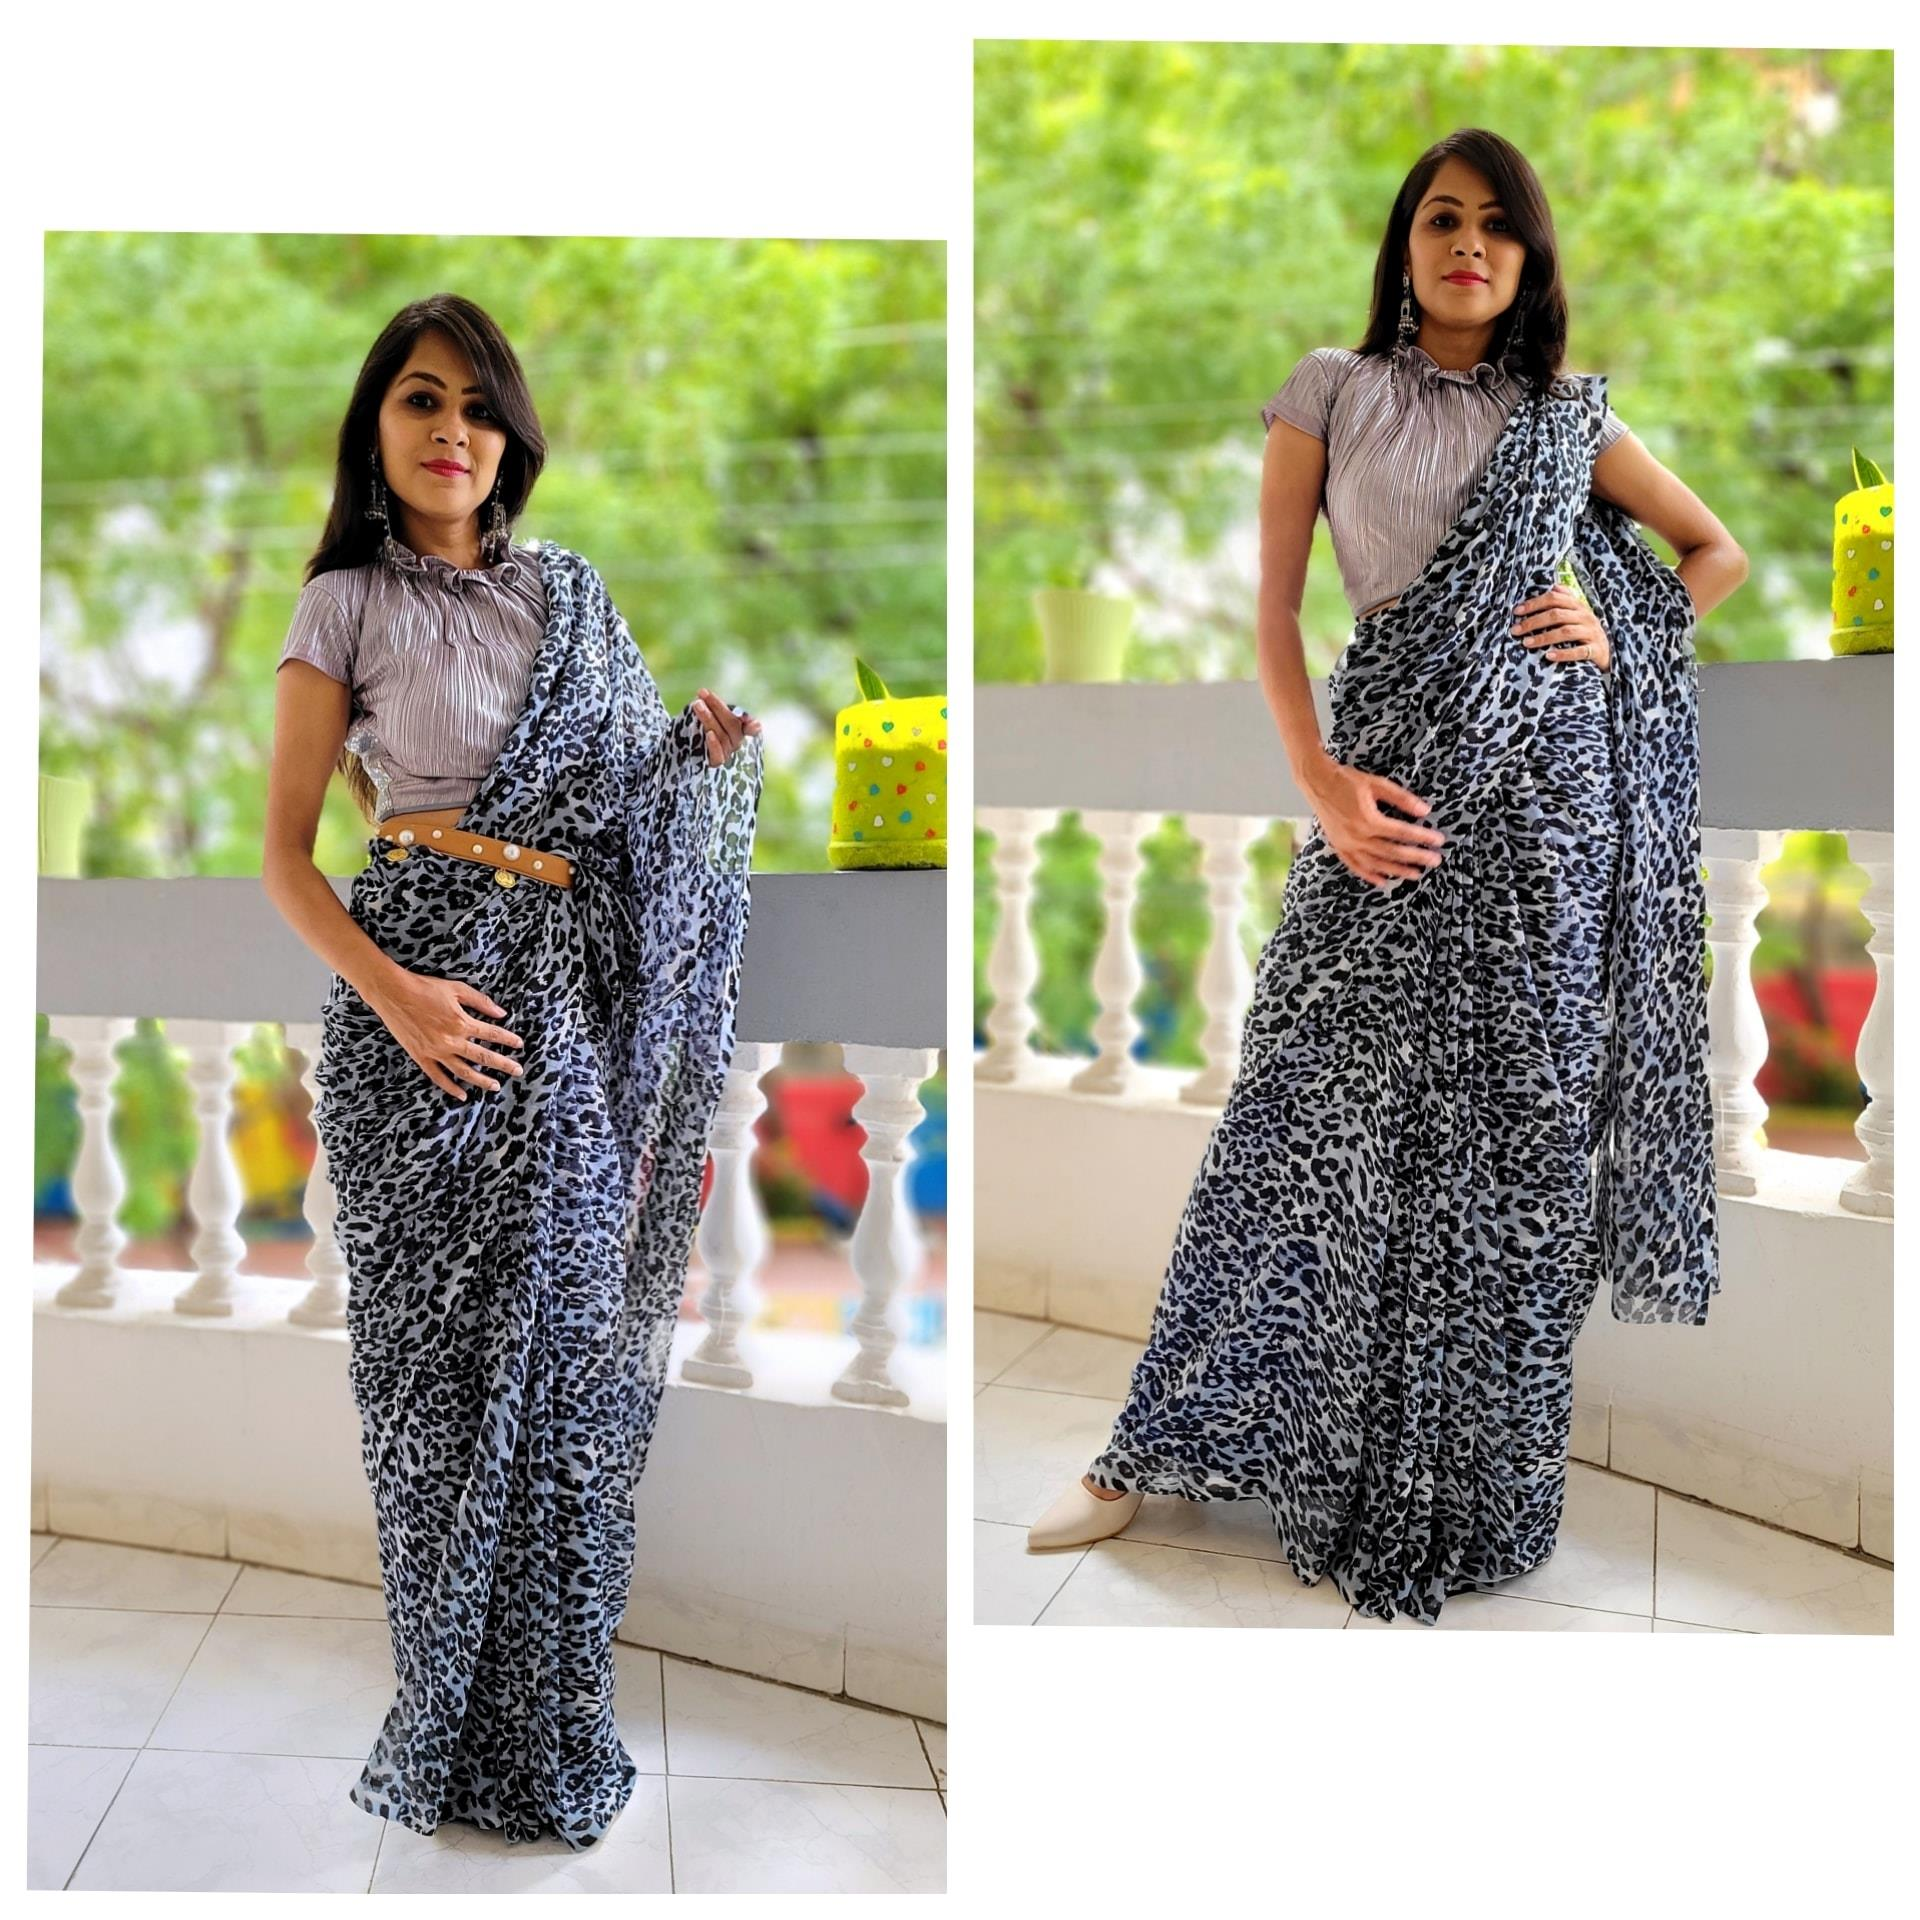 Designer Pleated Blouse With Leopard Print Saree.  Fabrics: 60 grams georgette from Surat saree. Price : Rs. 2866.00/- 2021-08-16